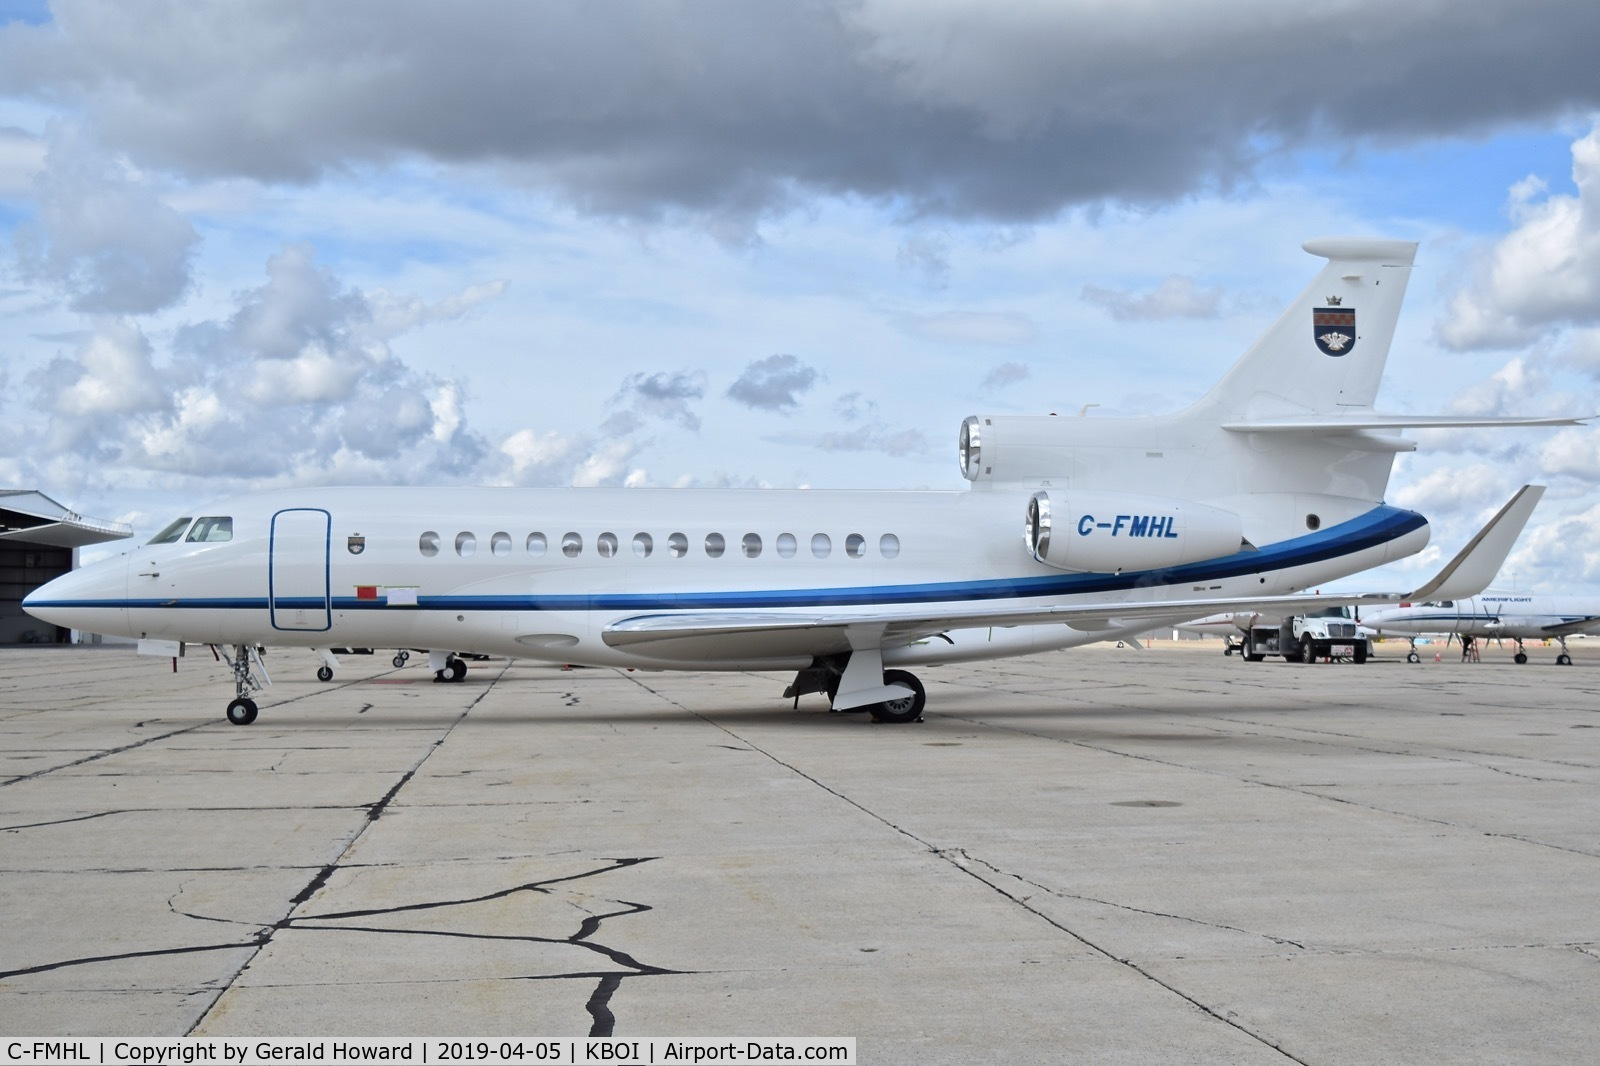 C-FMHL, 2012 Dassault Falcon 7X C/N 172, Parked on the sough GA ramp.